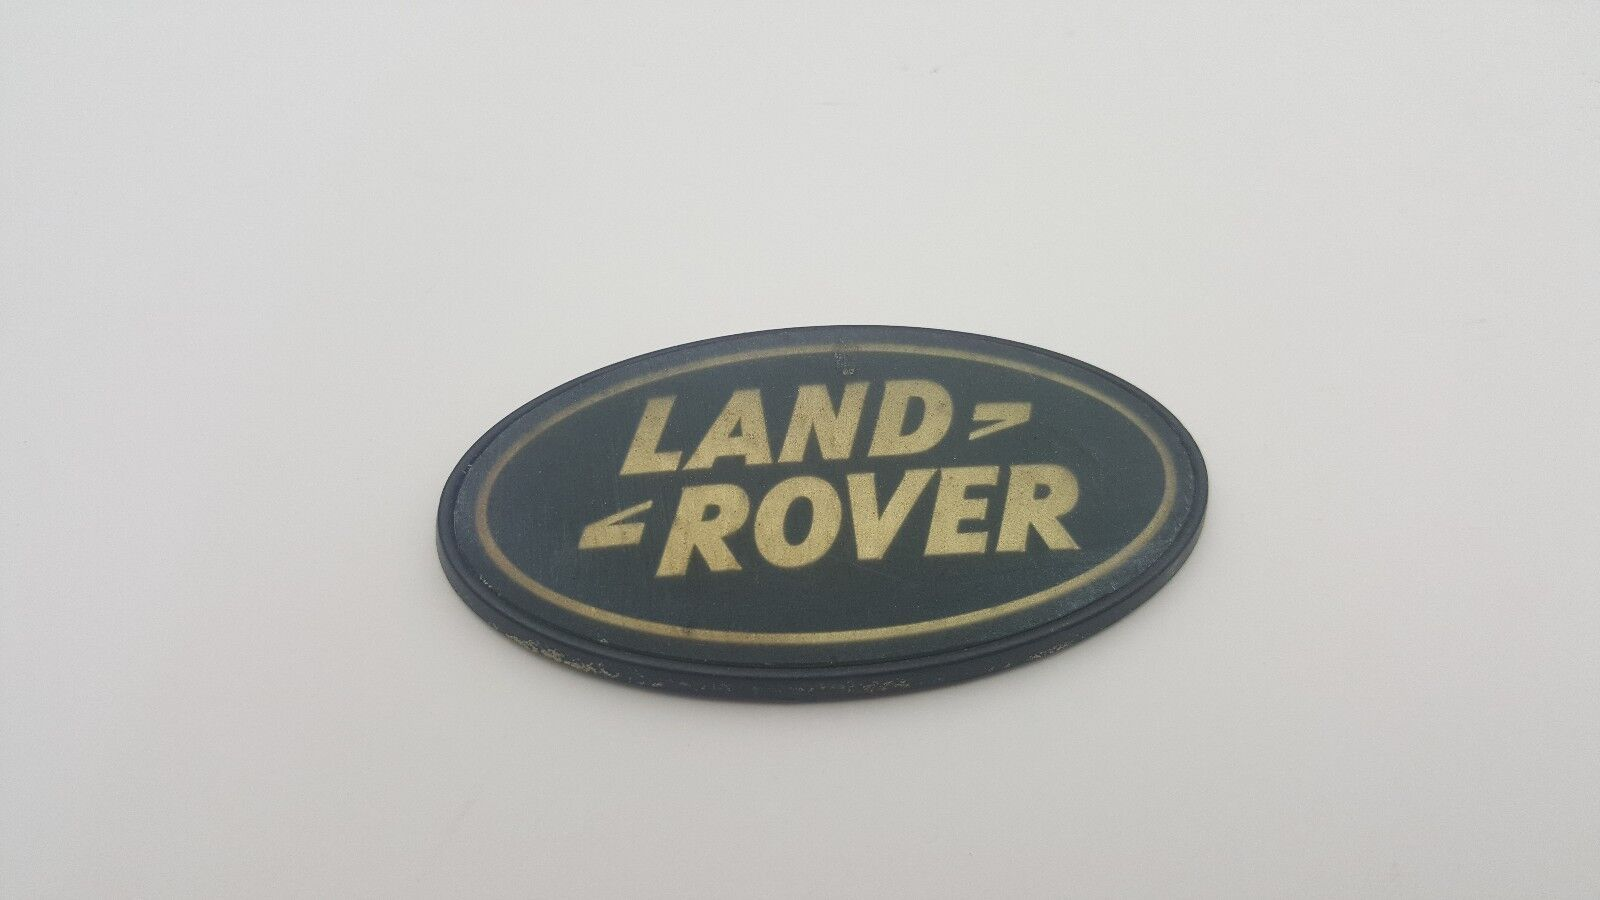 Used Land Rover Emblems For Sale